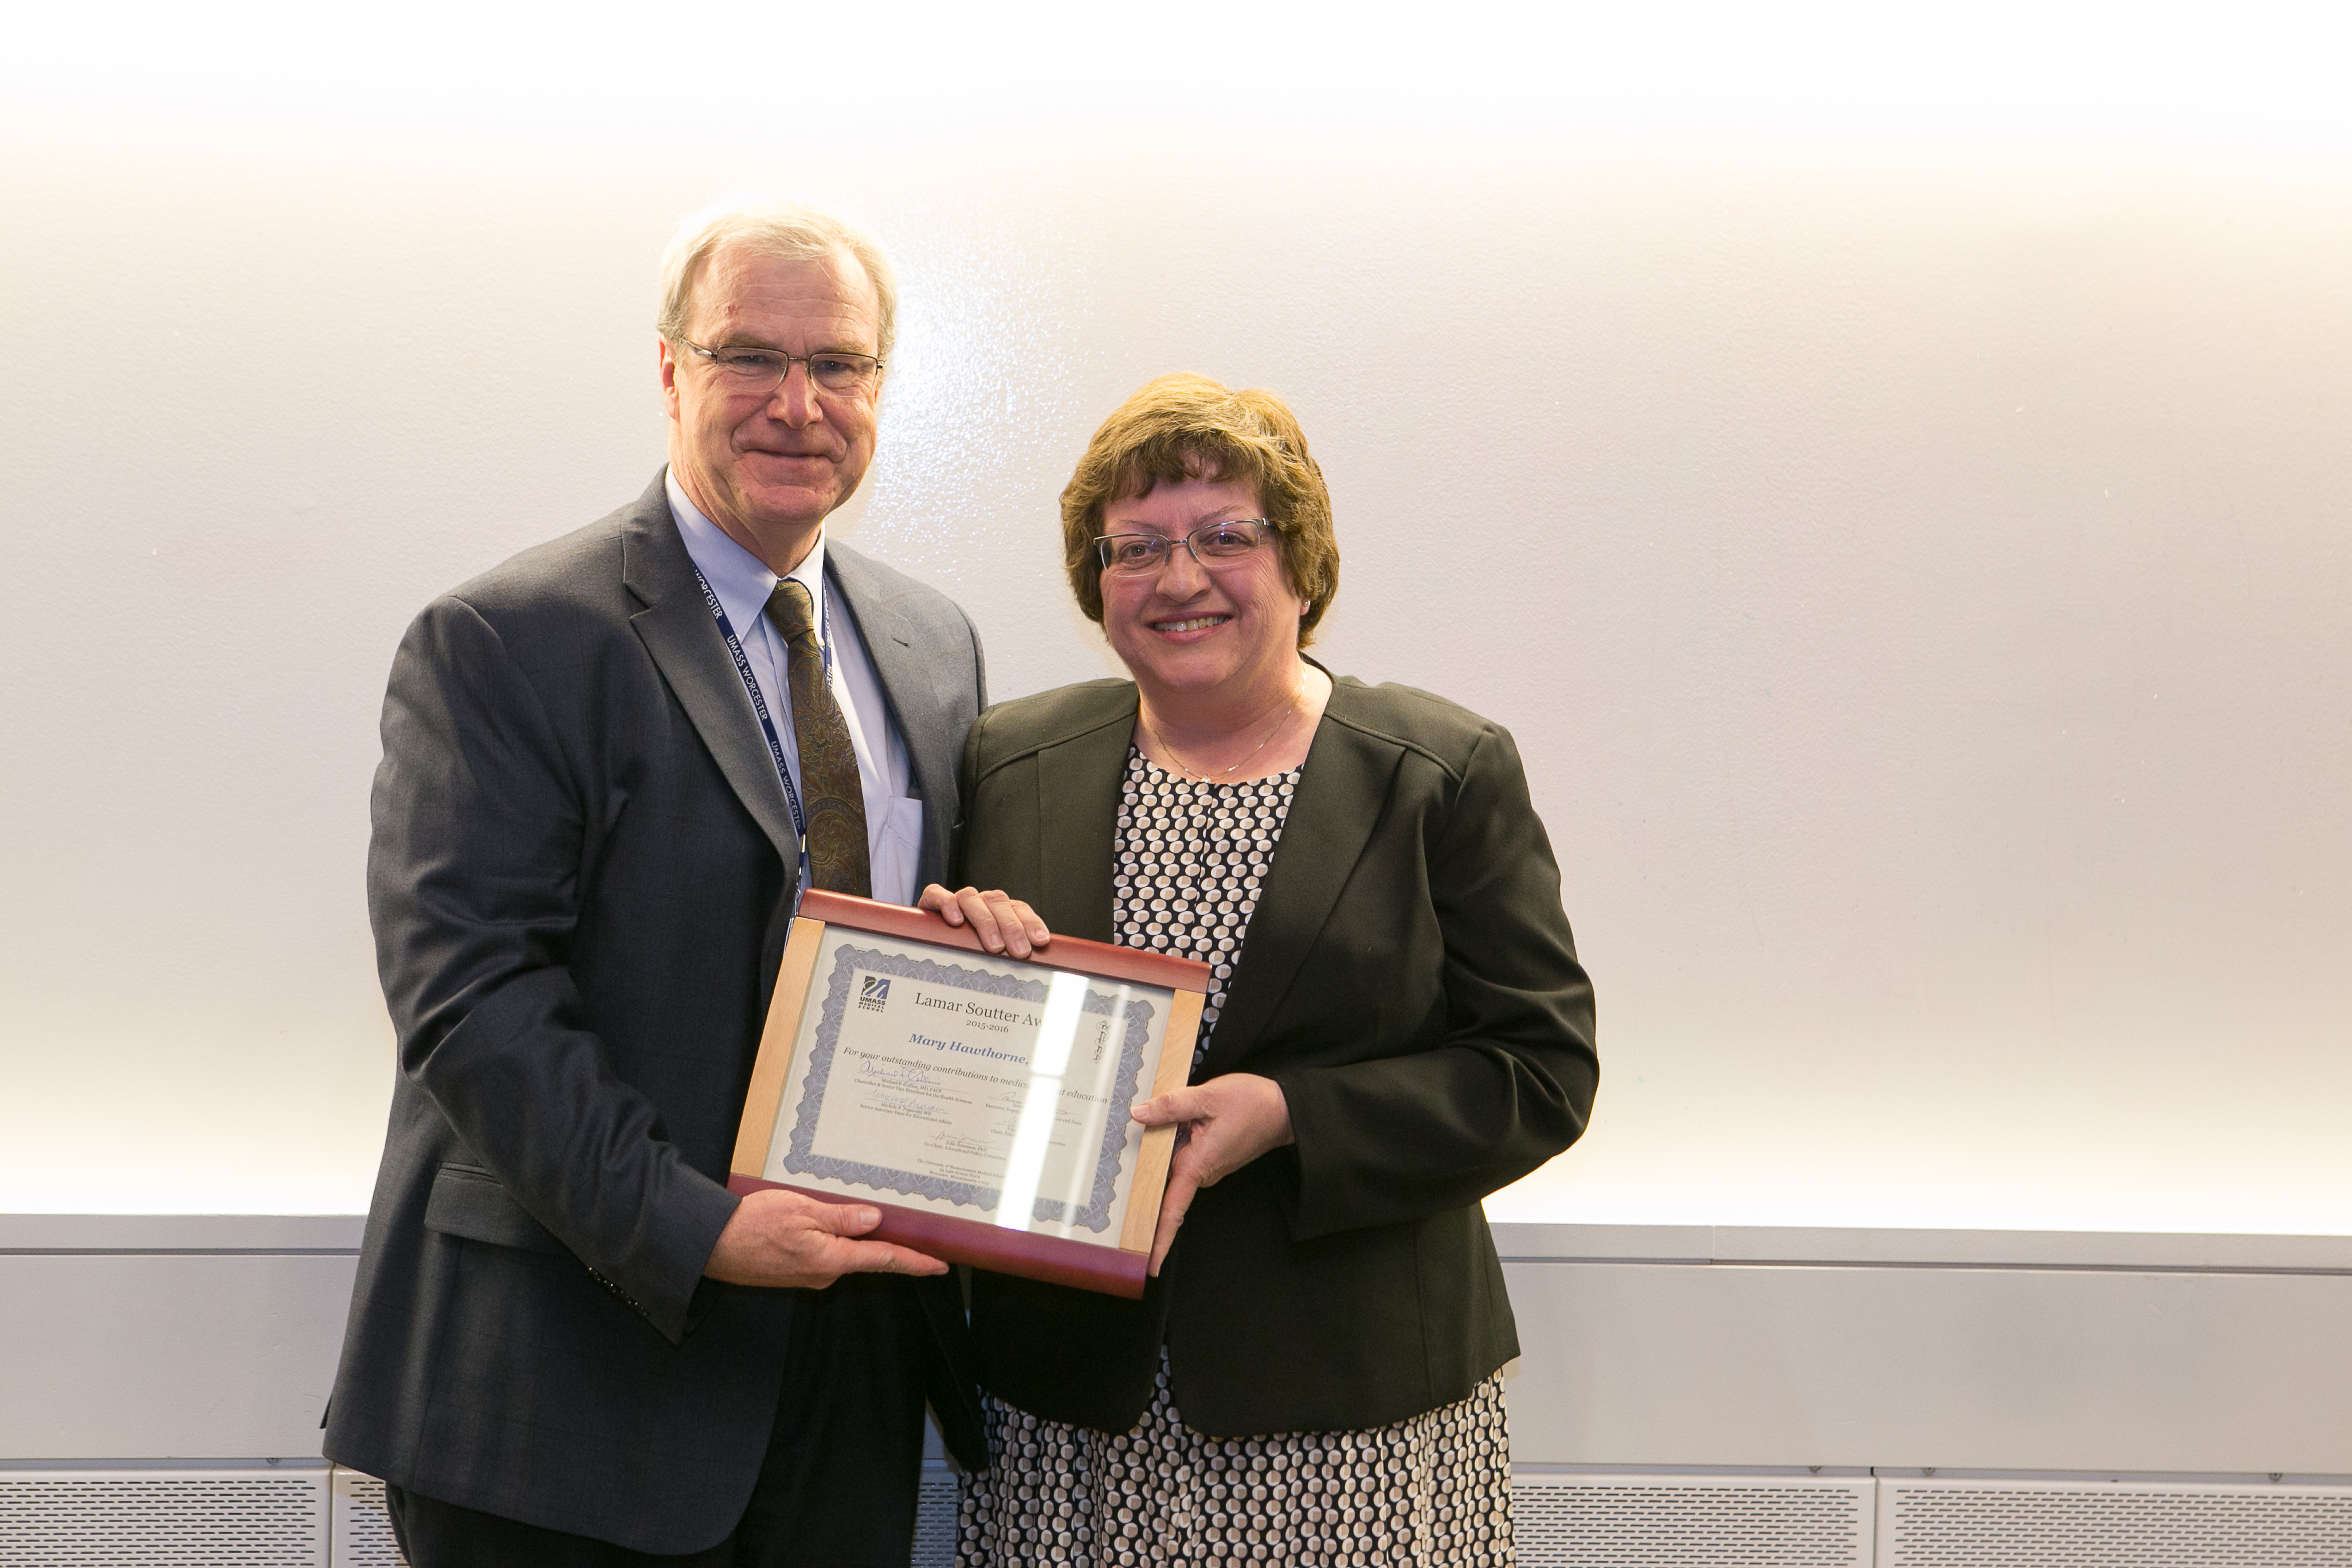 Dean's Award: Lamar Soutter Award for Excellence in Undergraduate Medical Education